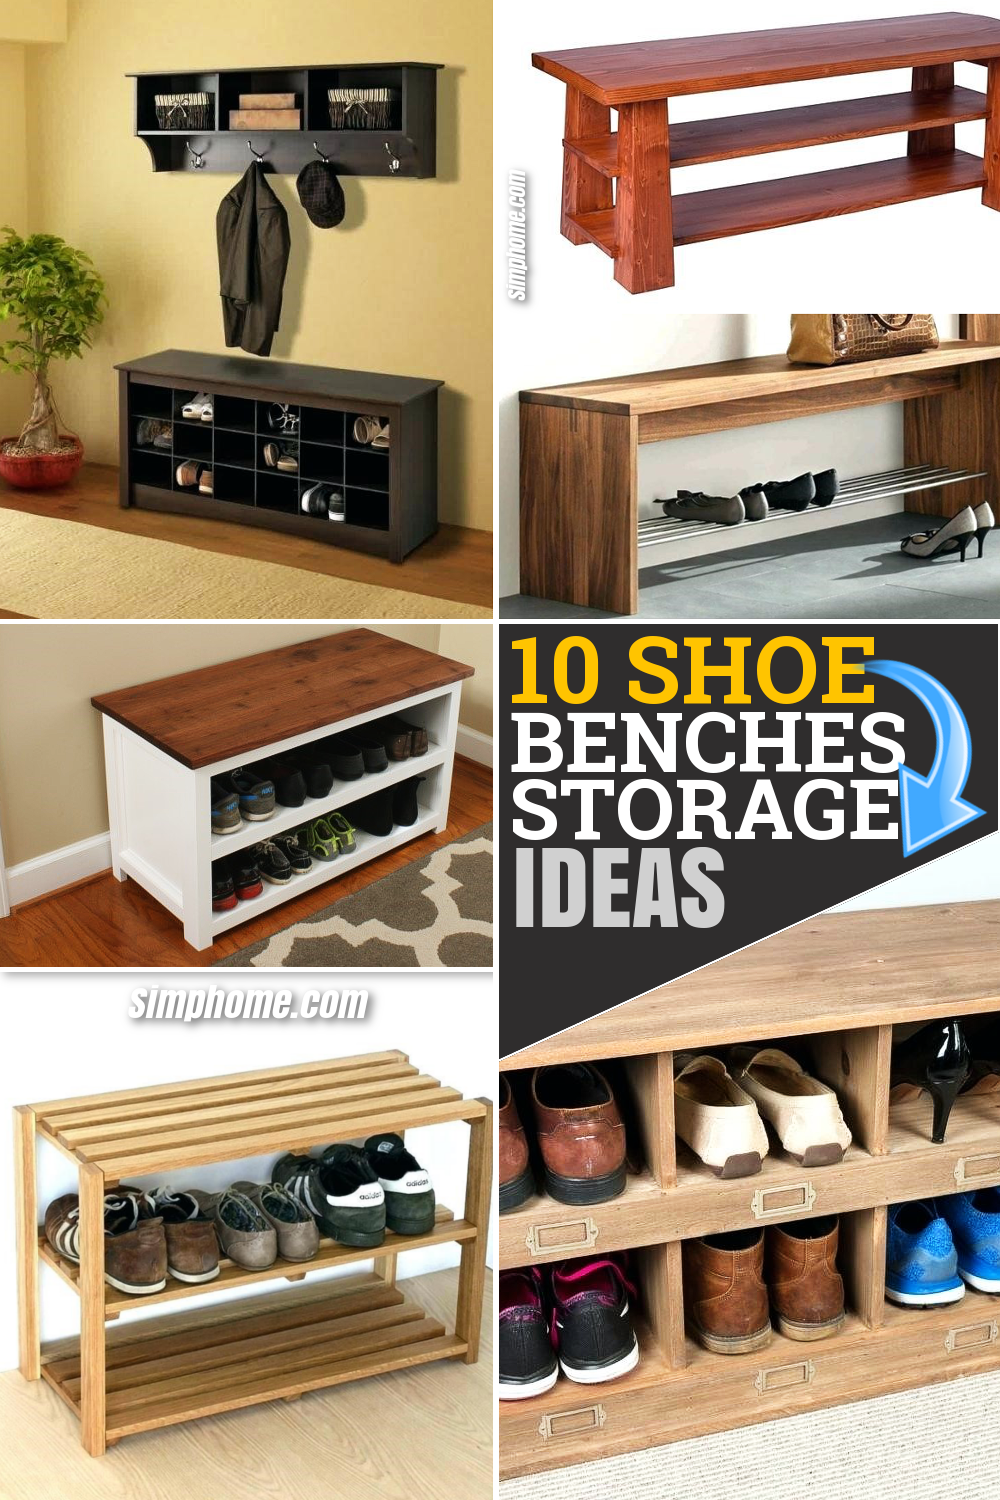 10 Efficient Shoe Bench Storage Ideas to Untie the Mess via Simphome.com Pinterest Featured Image